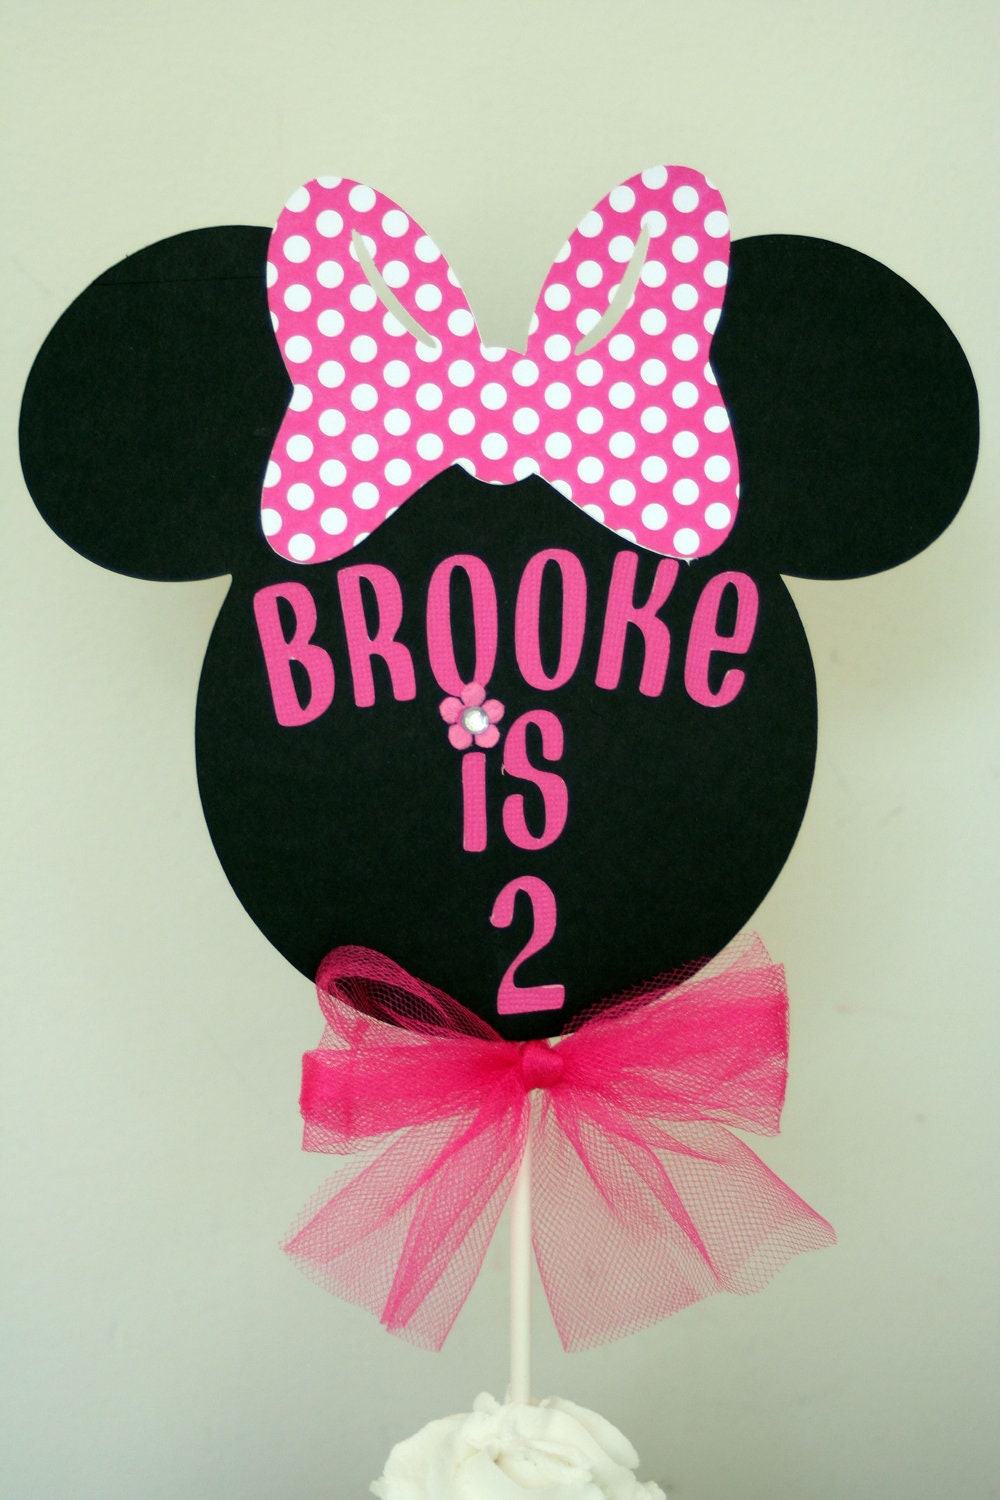 Baby Mickey Mouse Edible Cake Decorations Edible Baby Minnie Mouse Cake Decorations Cake